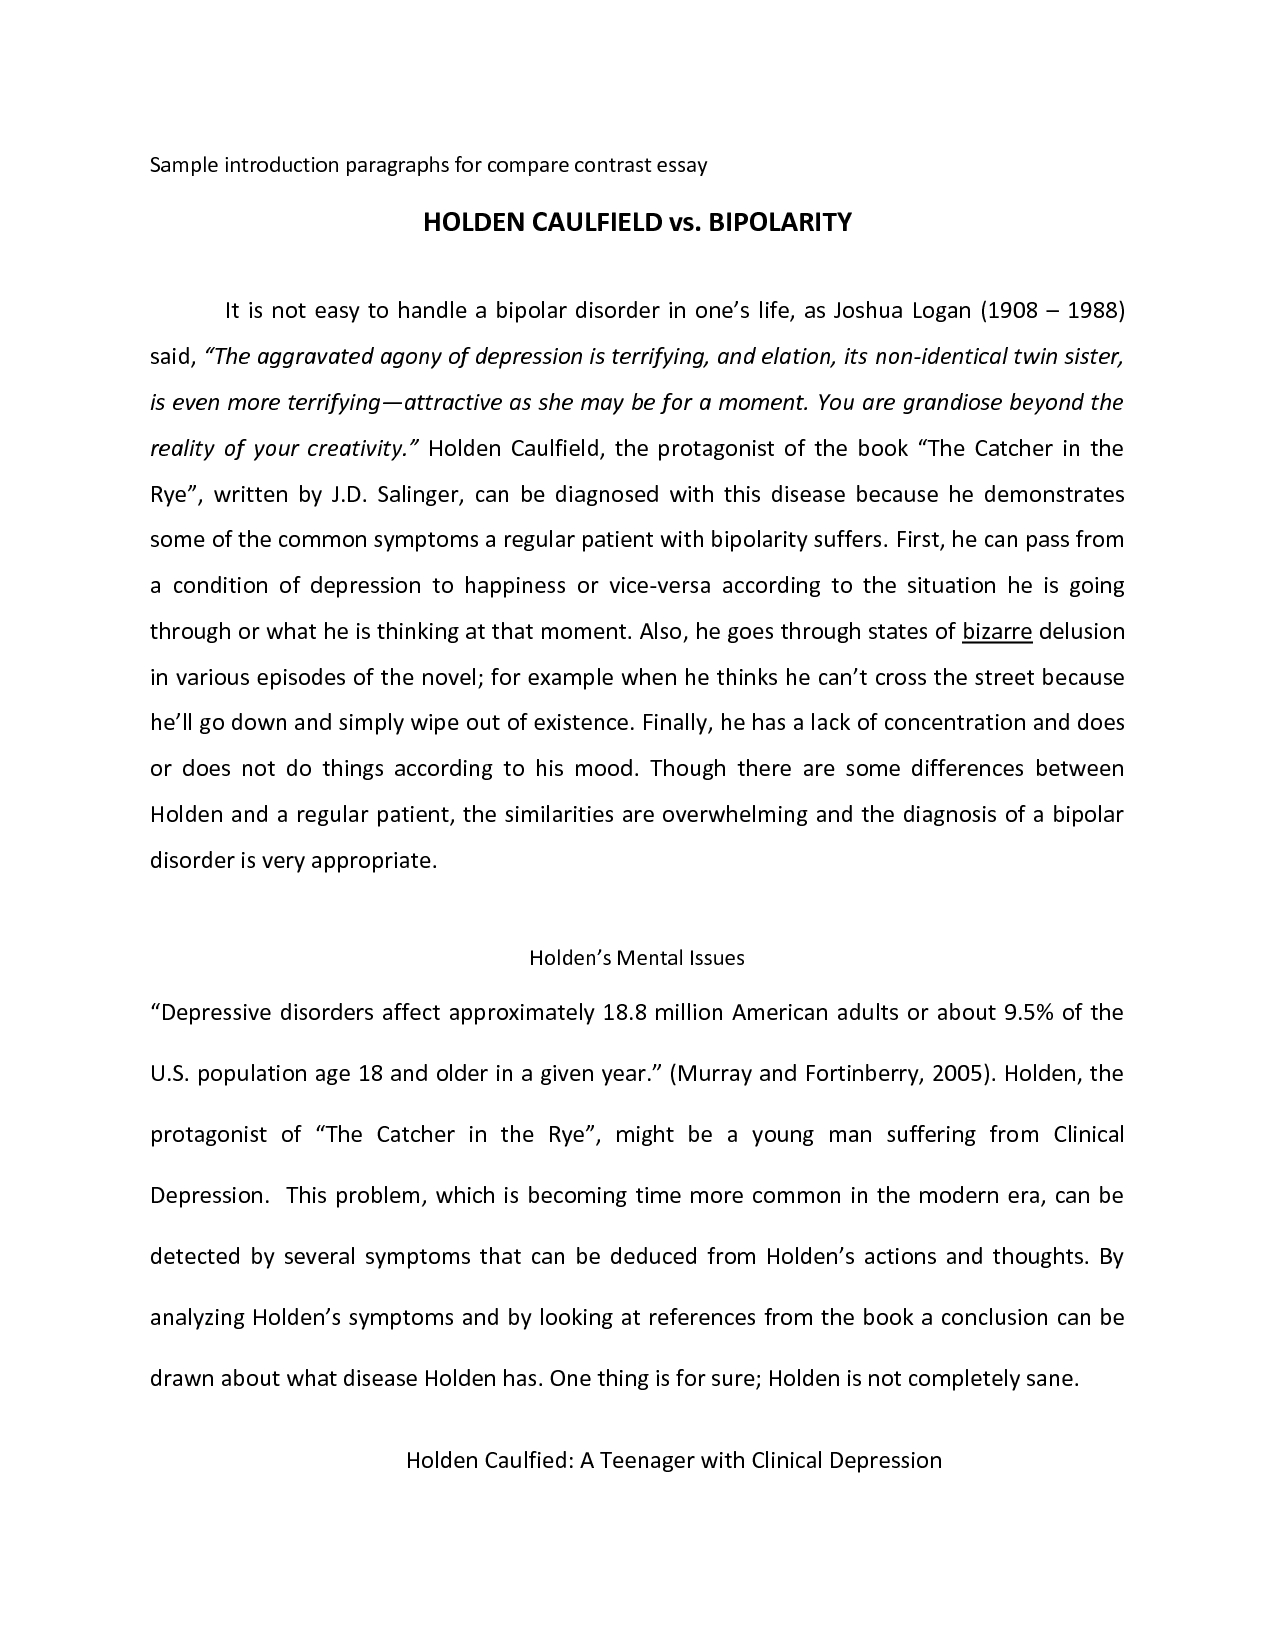 017 Essay Example Examples Of Compare And Contrast Essays Collection Solutions Comparison Bunch Ideas On L Block Format 4th Grade 5th Food Middle School 6th Unique High Vs College Topics Sample With Thesis Statement Full